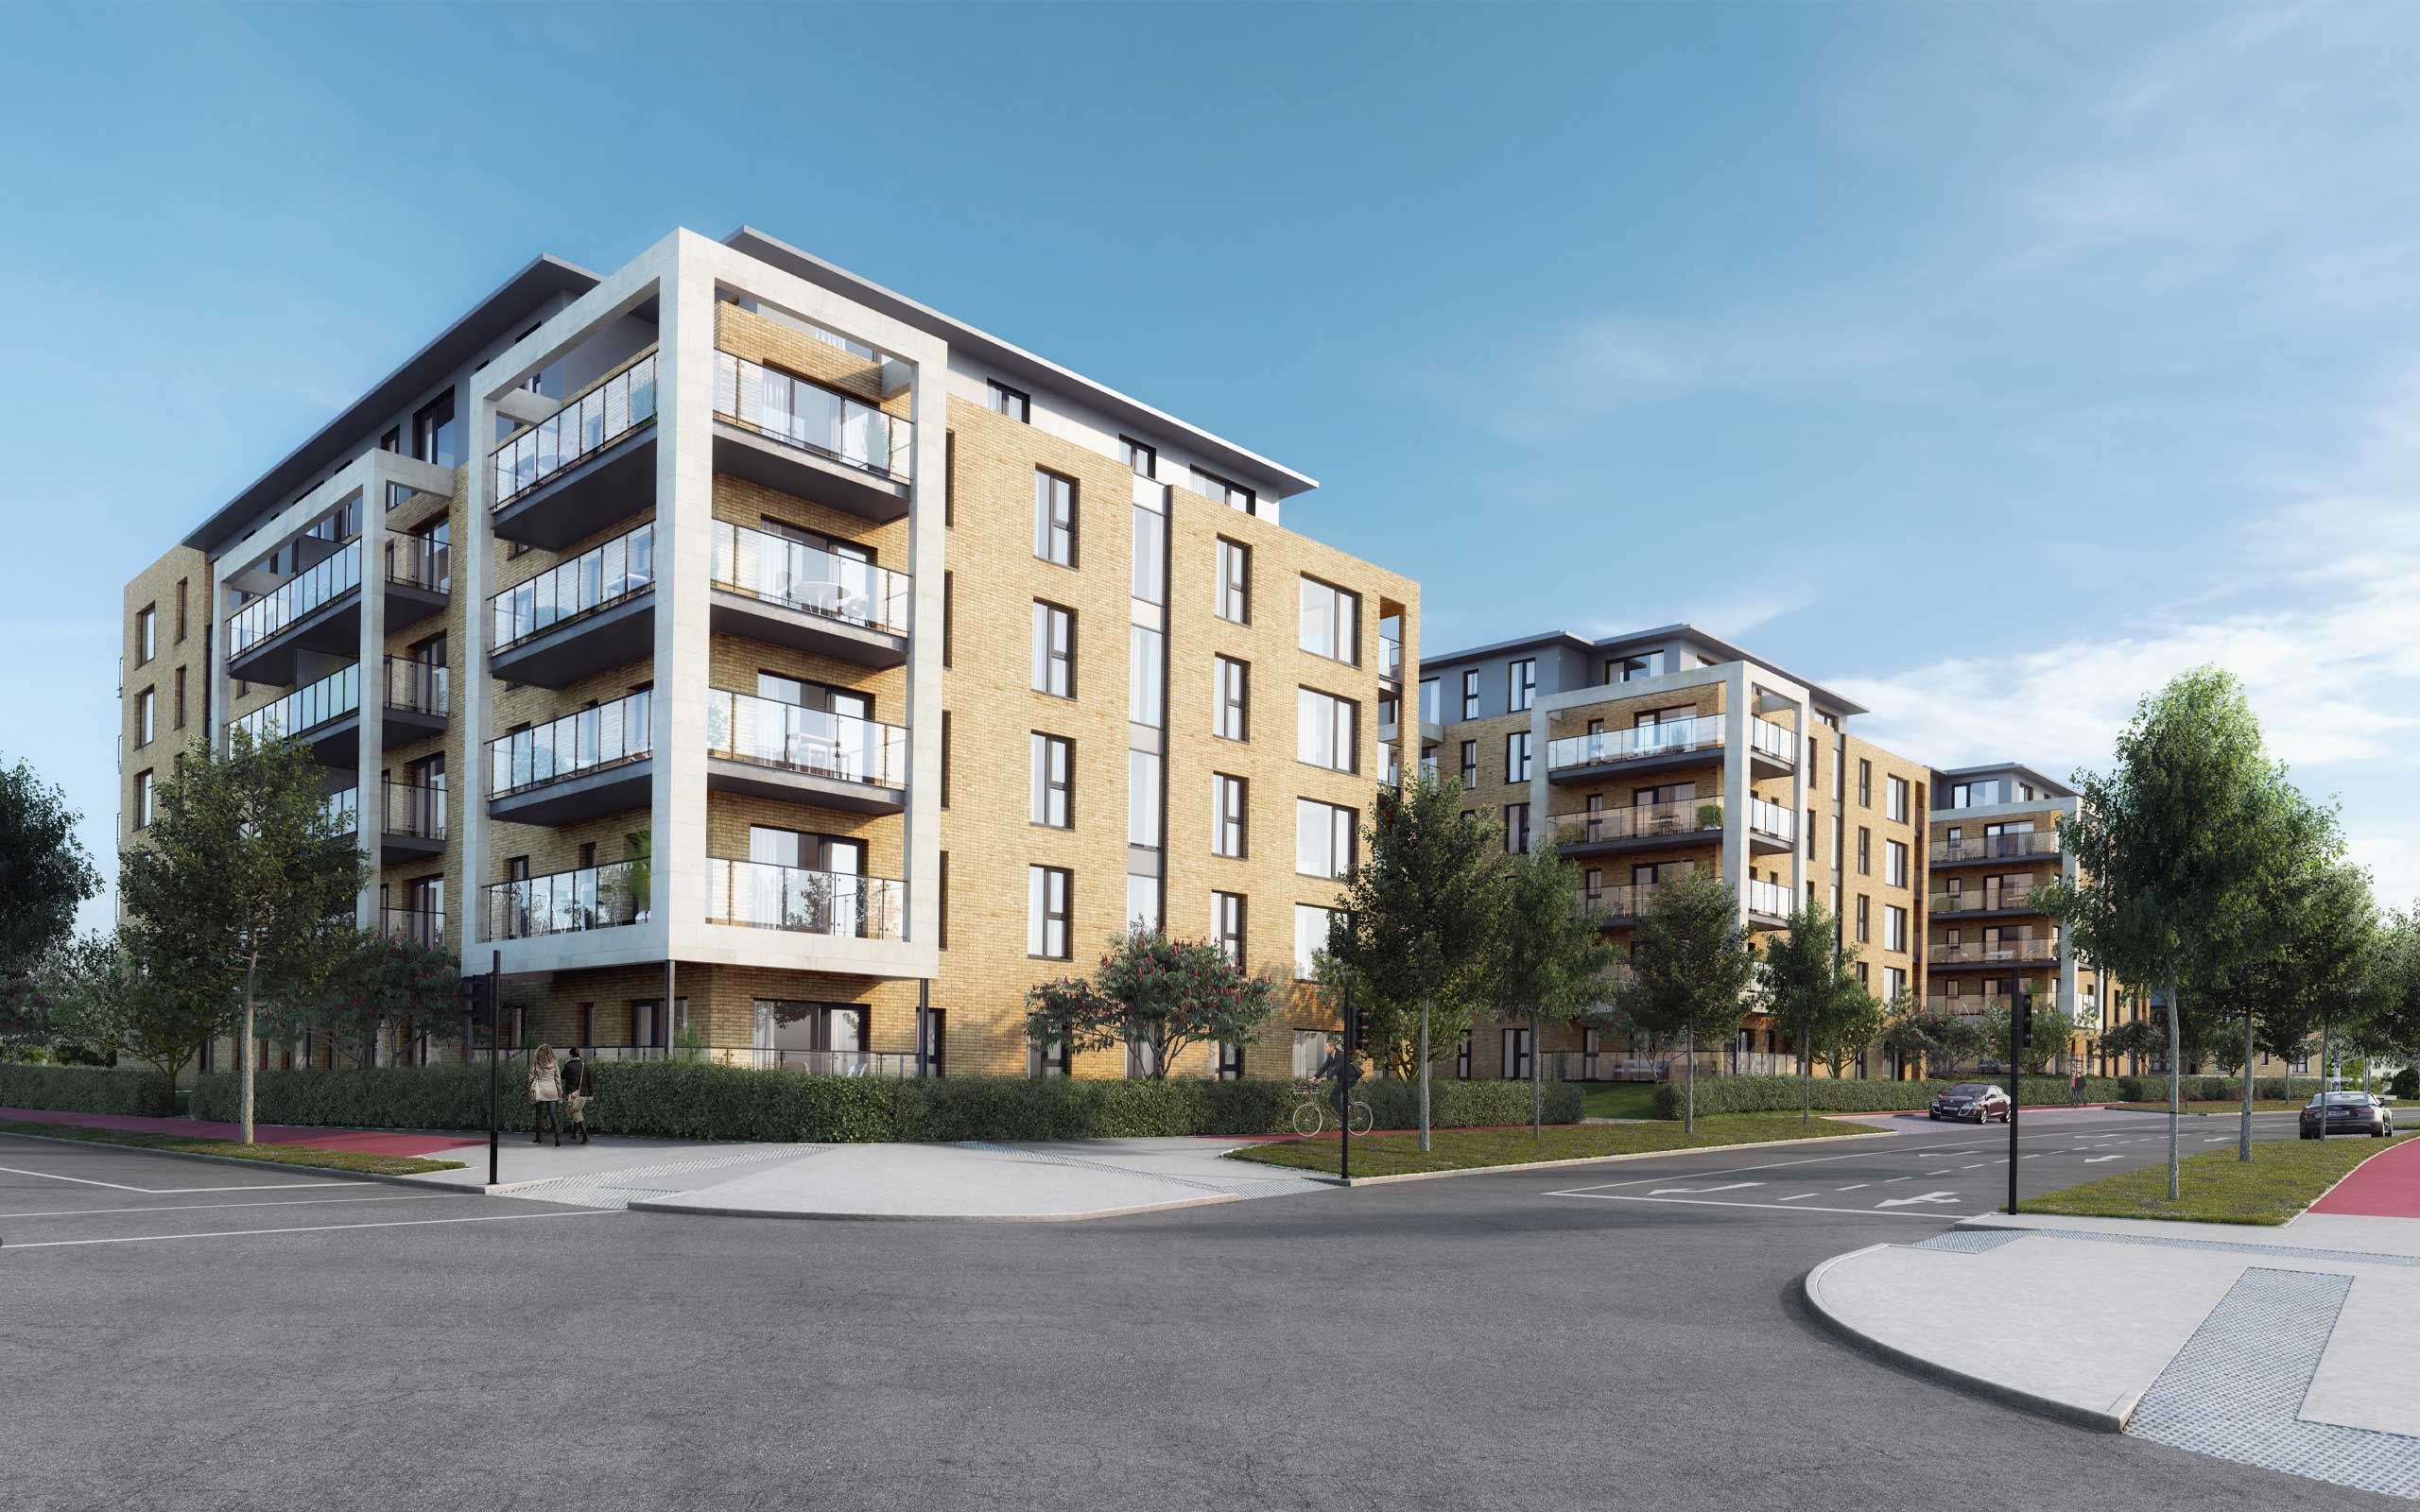 880 Units at Cooldown Commons and Fortunestown, Citywest. 3D Visualisation by 3D Design Bureau_